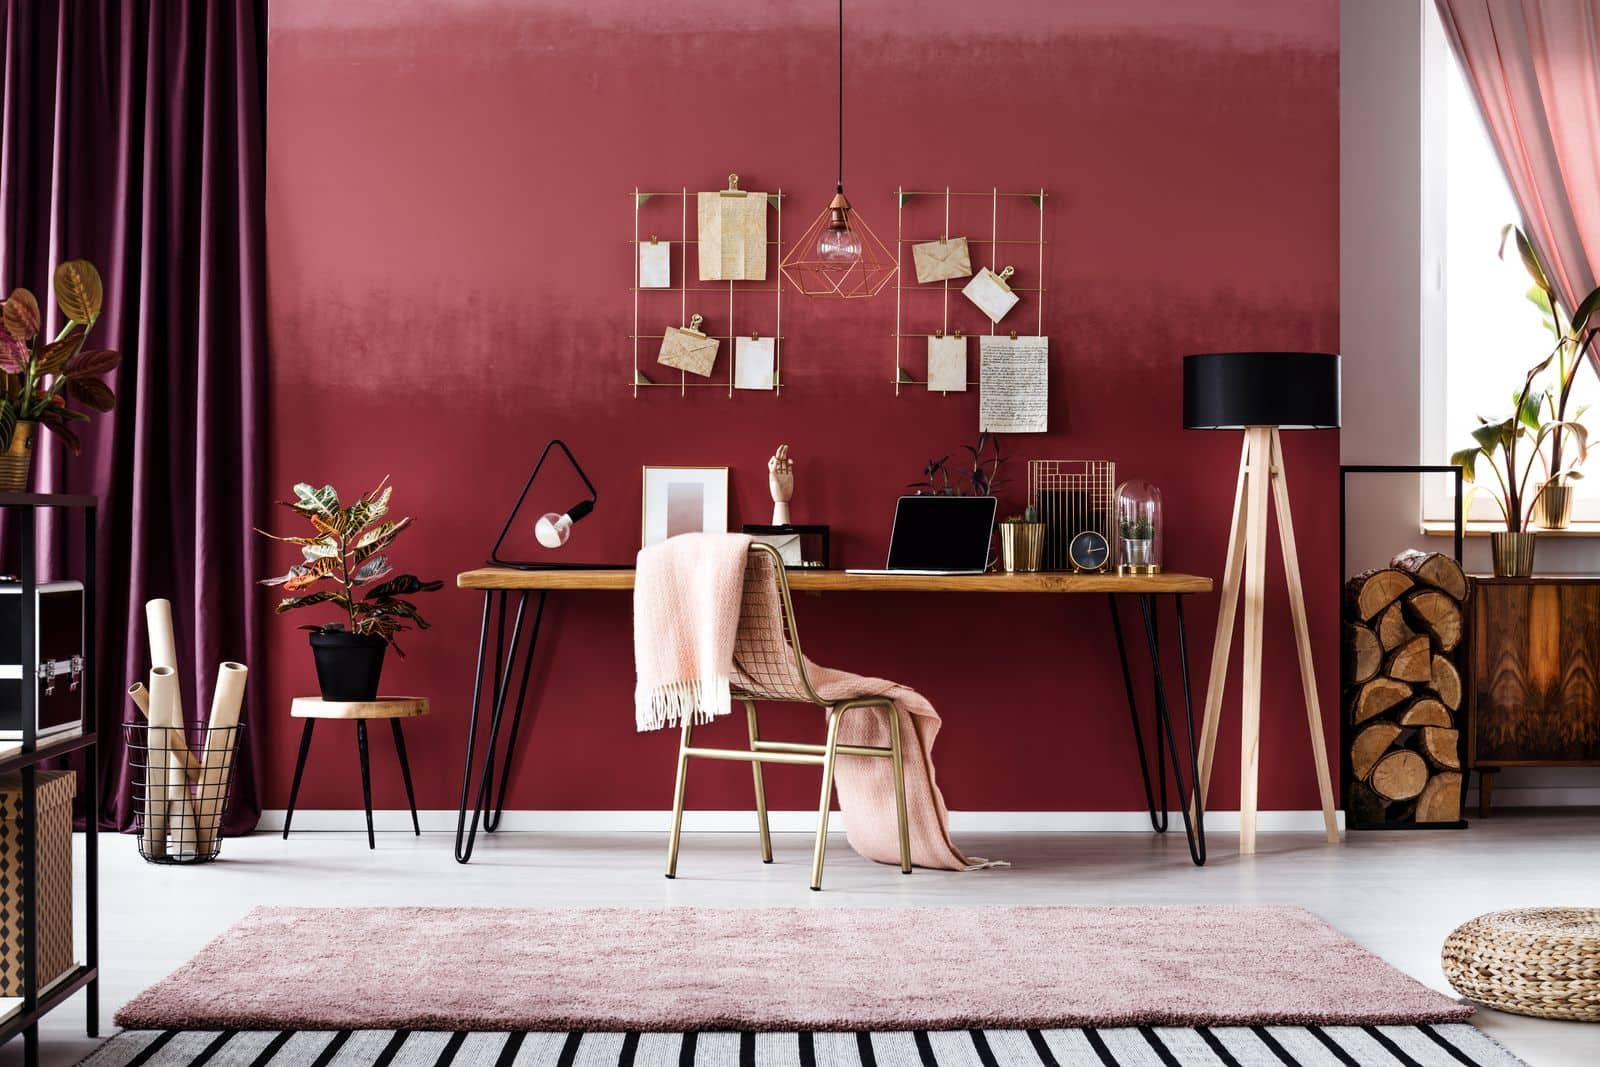 Home office with burgundy tones